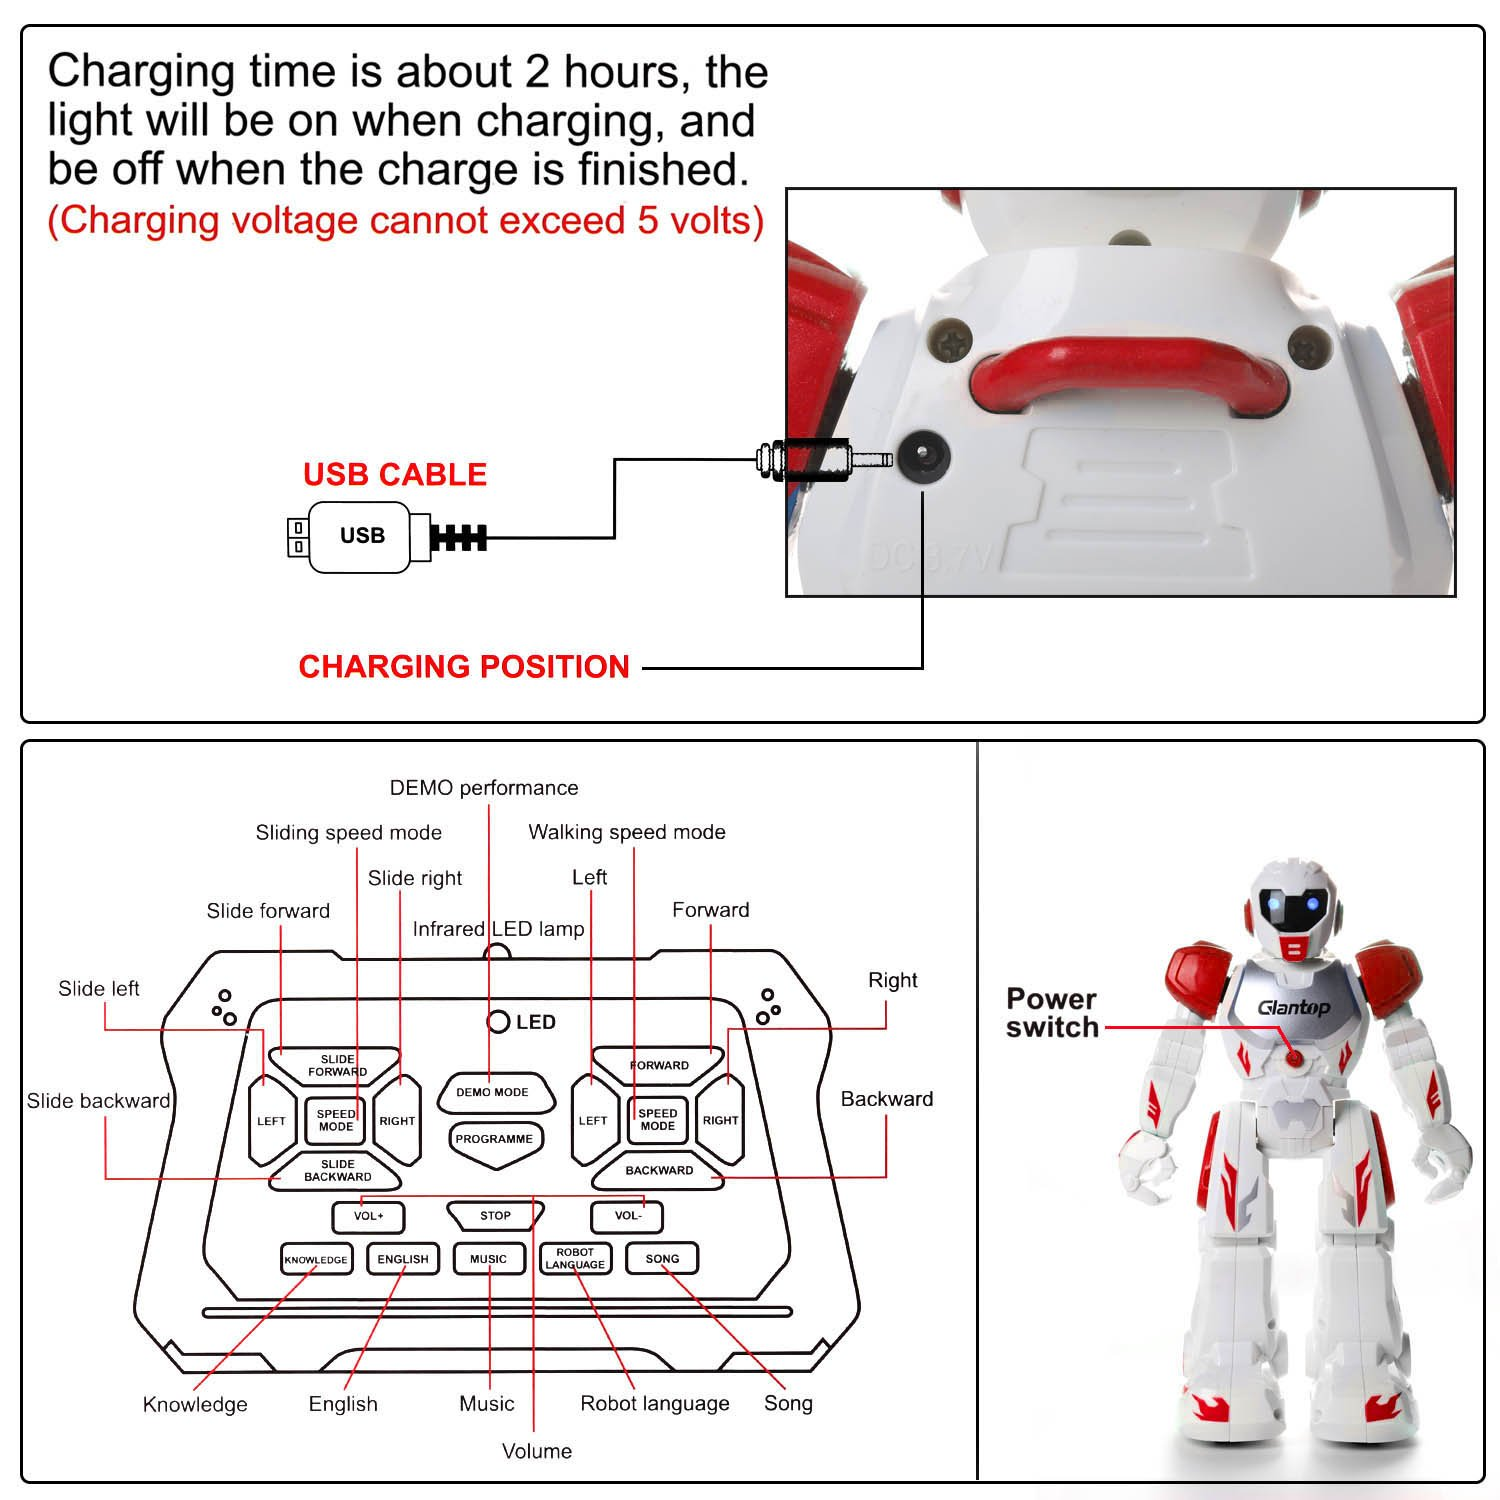 Glantop Remote Control RC Robots Interactive Walking Singing Dancing Smart Programmable Robotics for Kids Boys Girls (Red) by Glantop (Image #7)